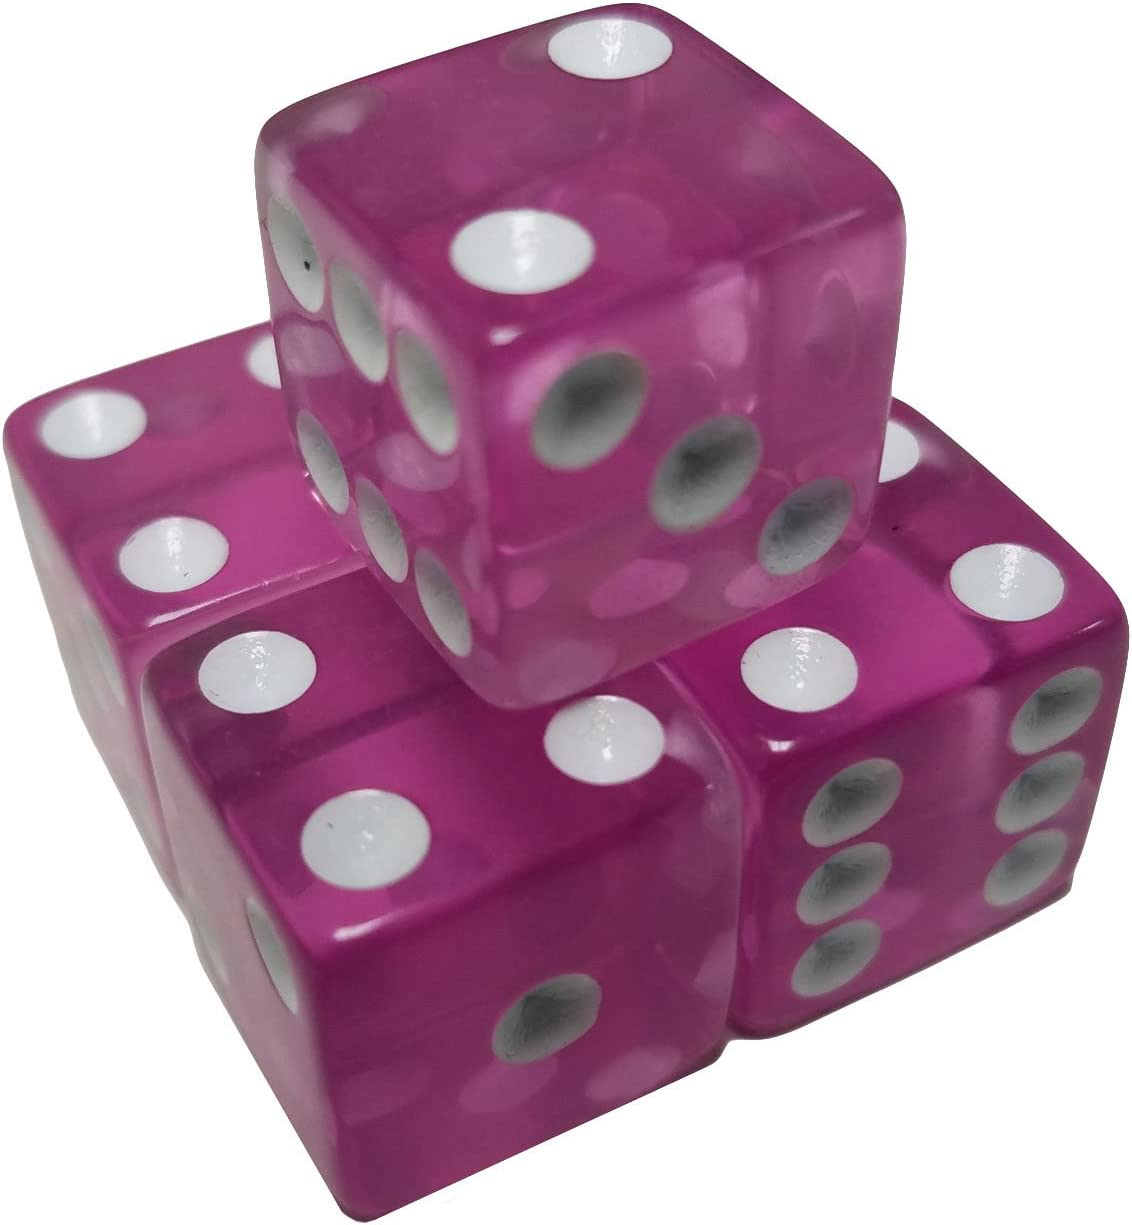 Set of 5 Educational White Color Spots 18mm Wood Dice in Snow Organza Bag